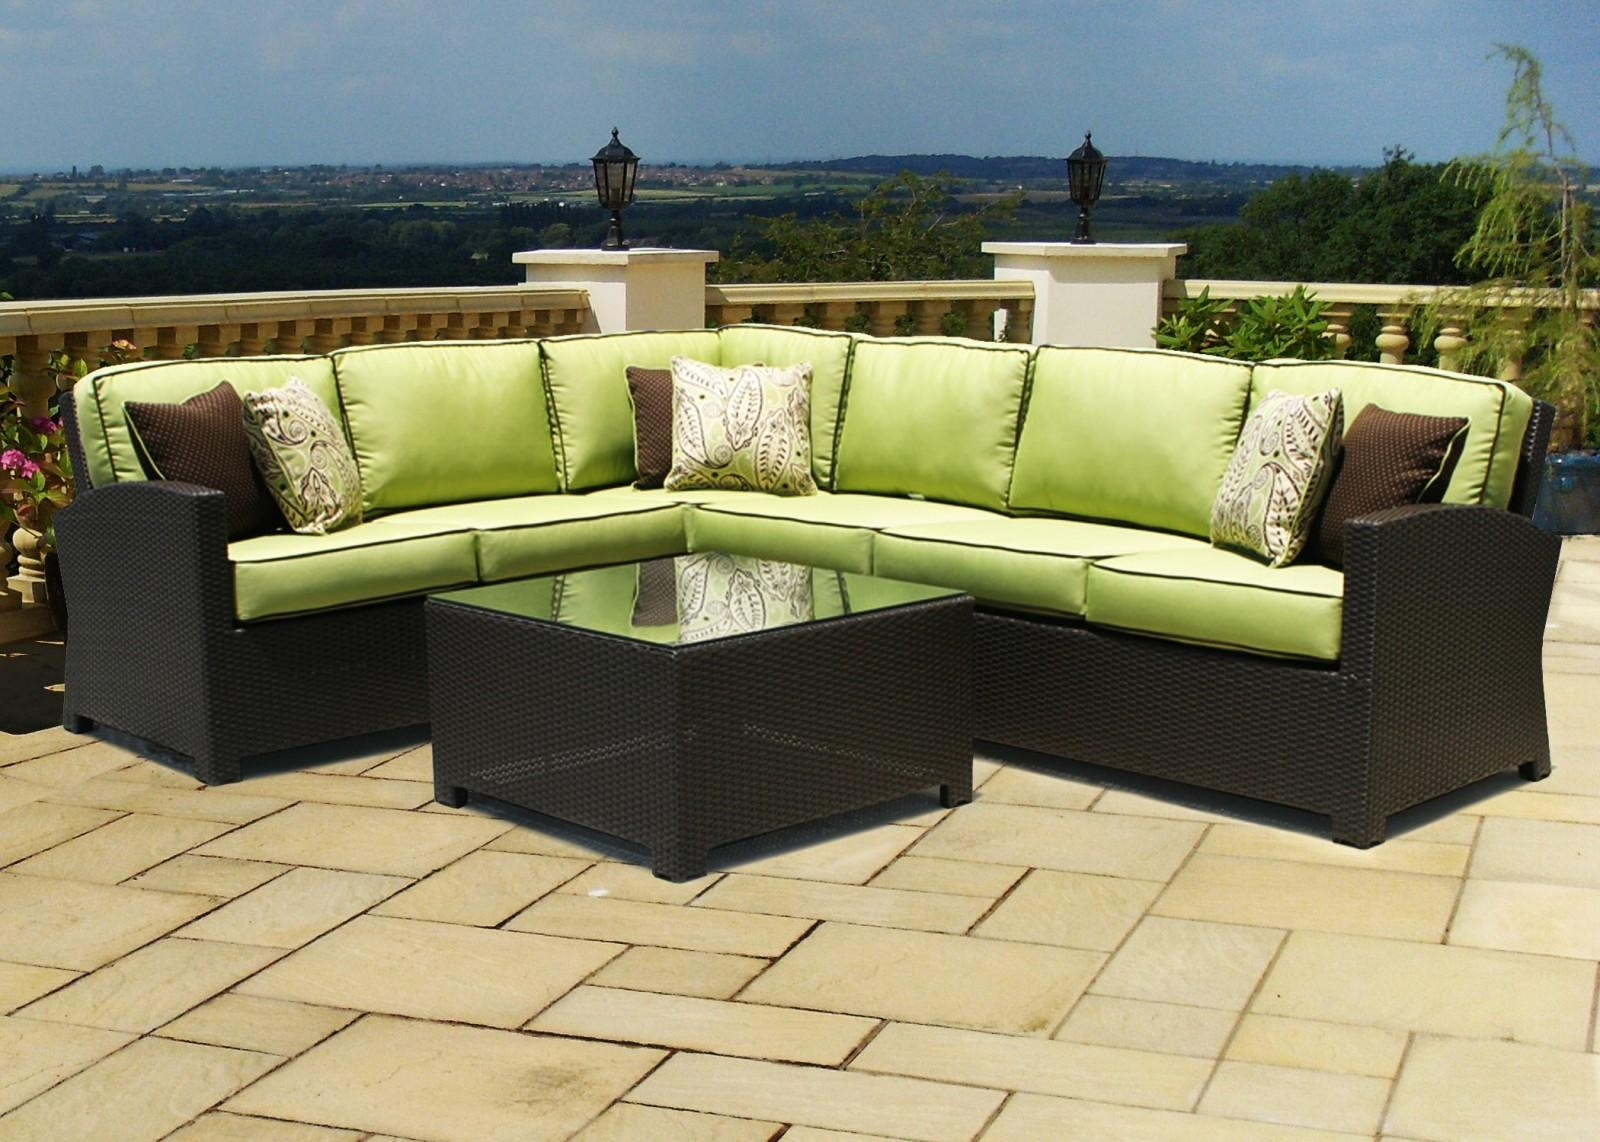 Sofas : Marvelous Outside Chair Cushions Rattan Furniture Cushions Throughout Cheap Patio Sofas (Image 21 of 22)